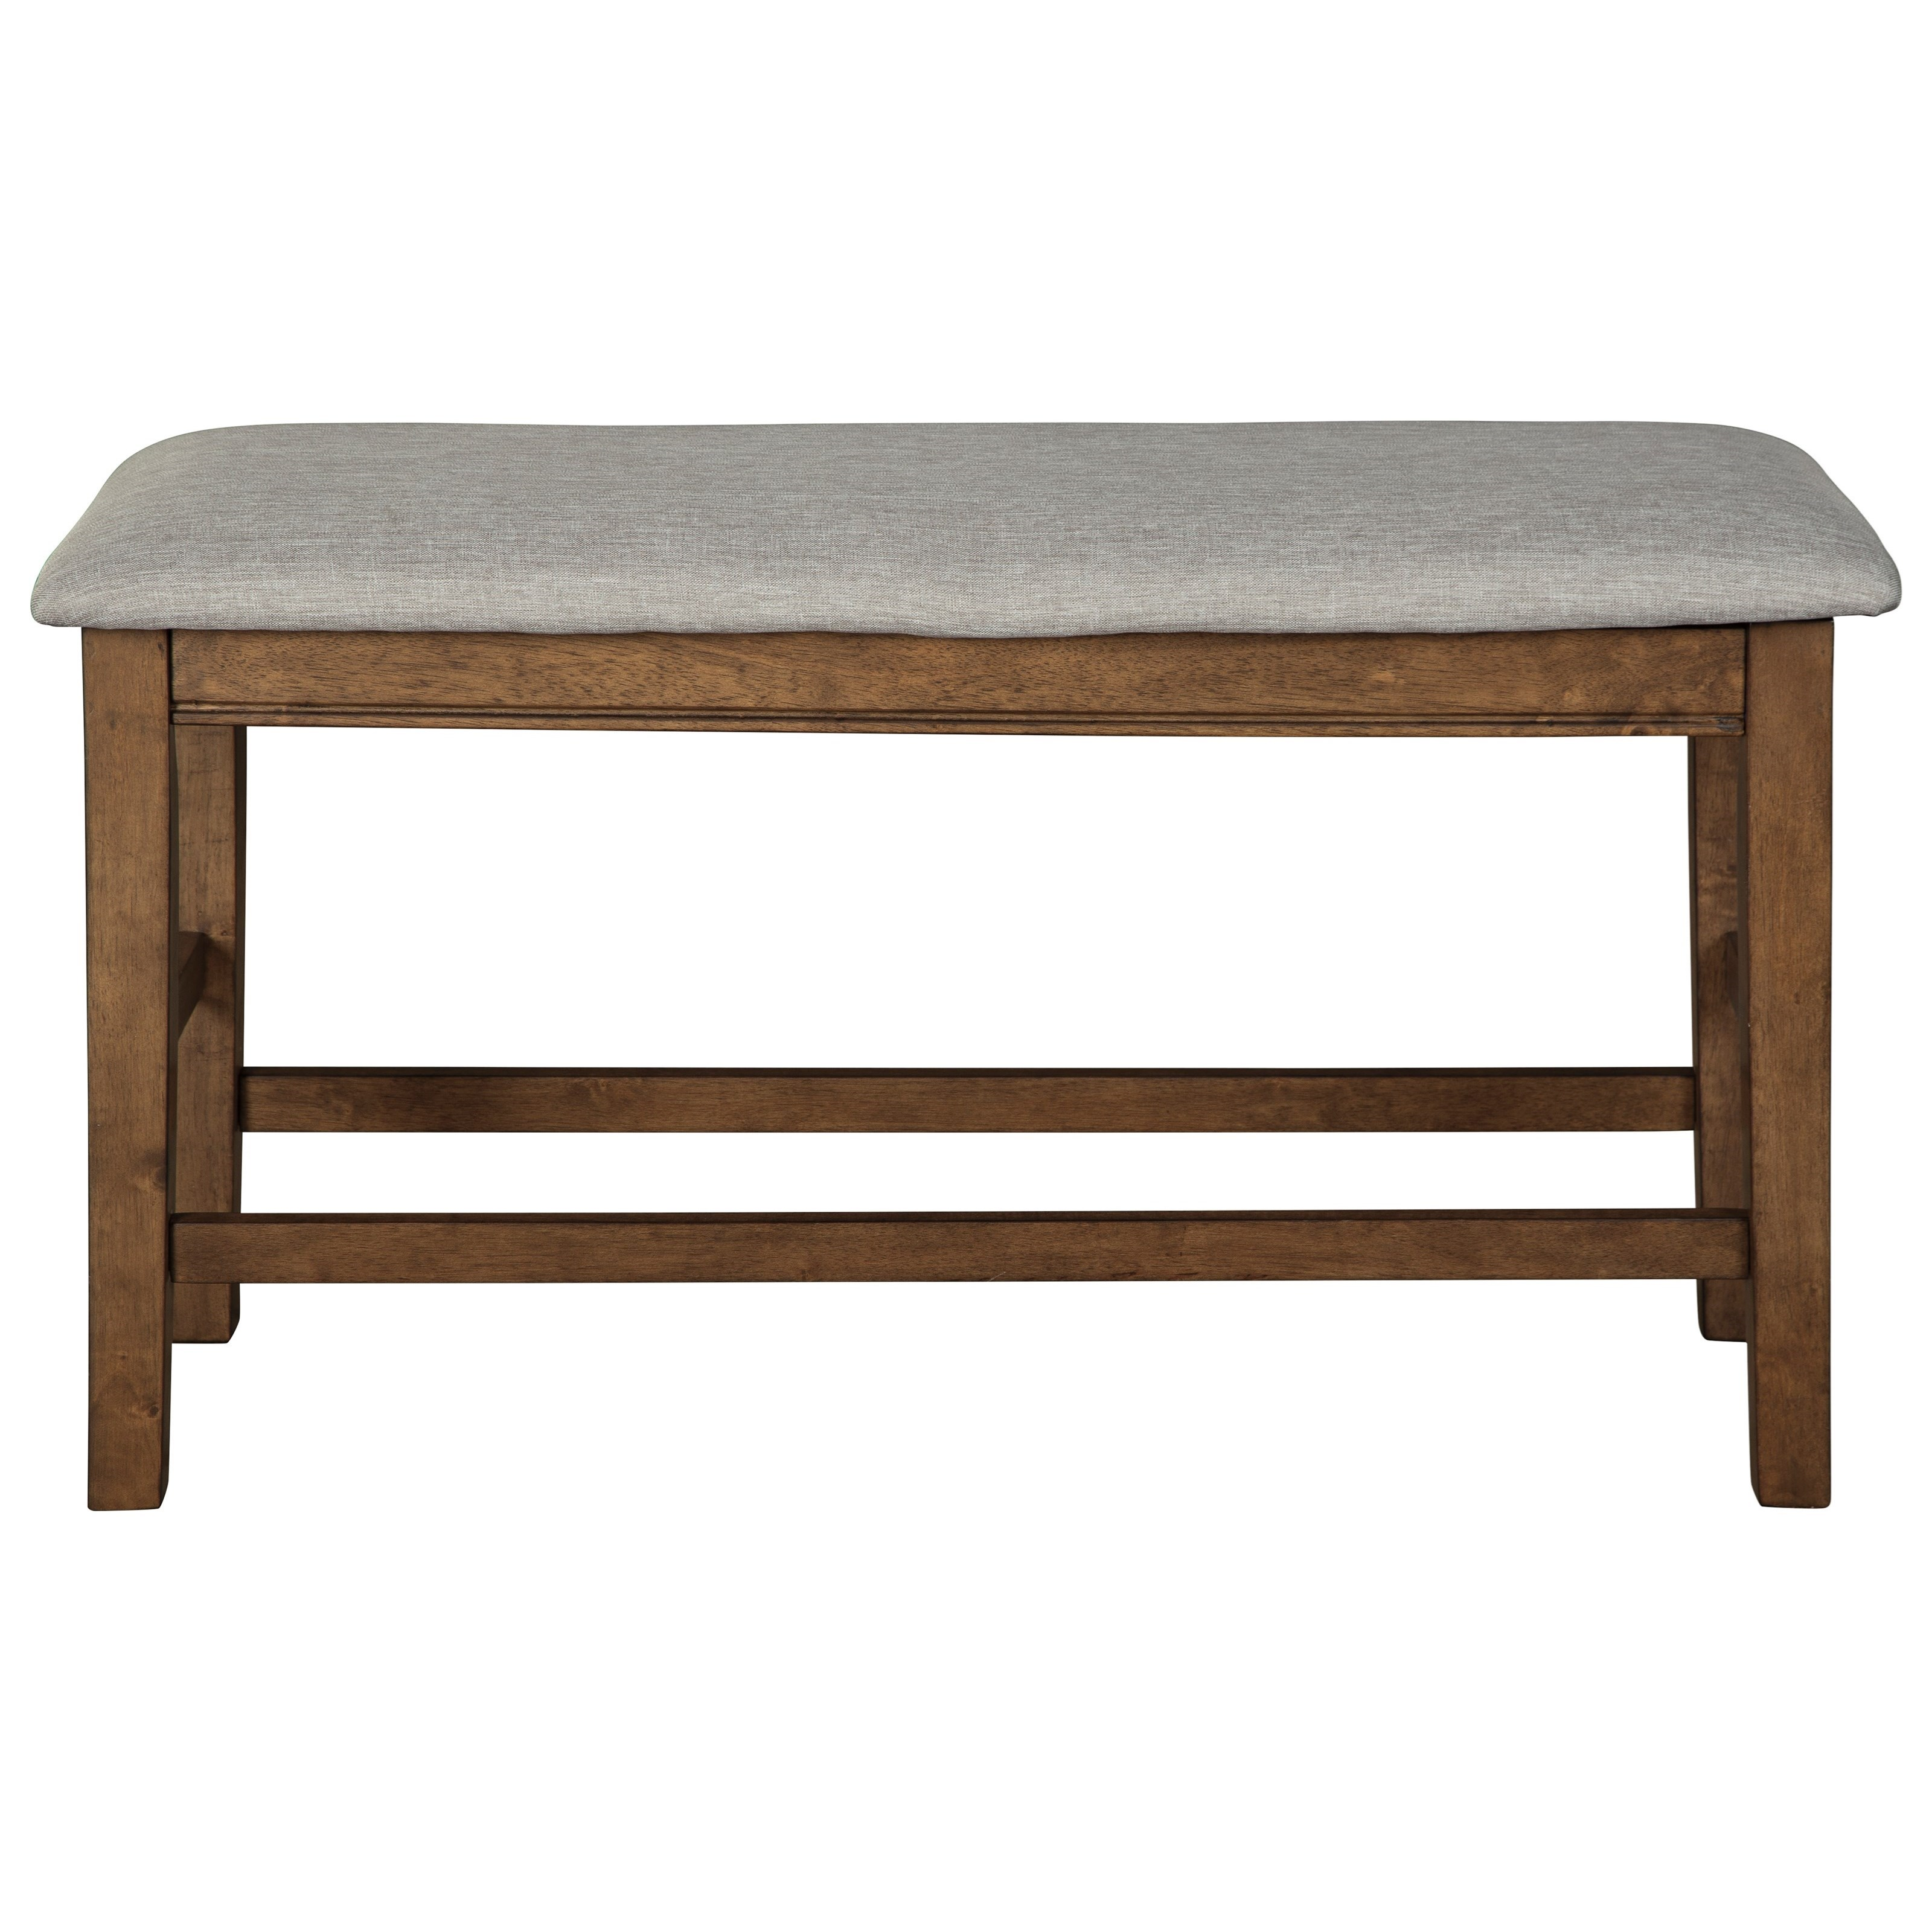 Counter-Height Upholstered Bench